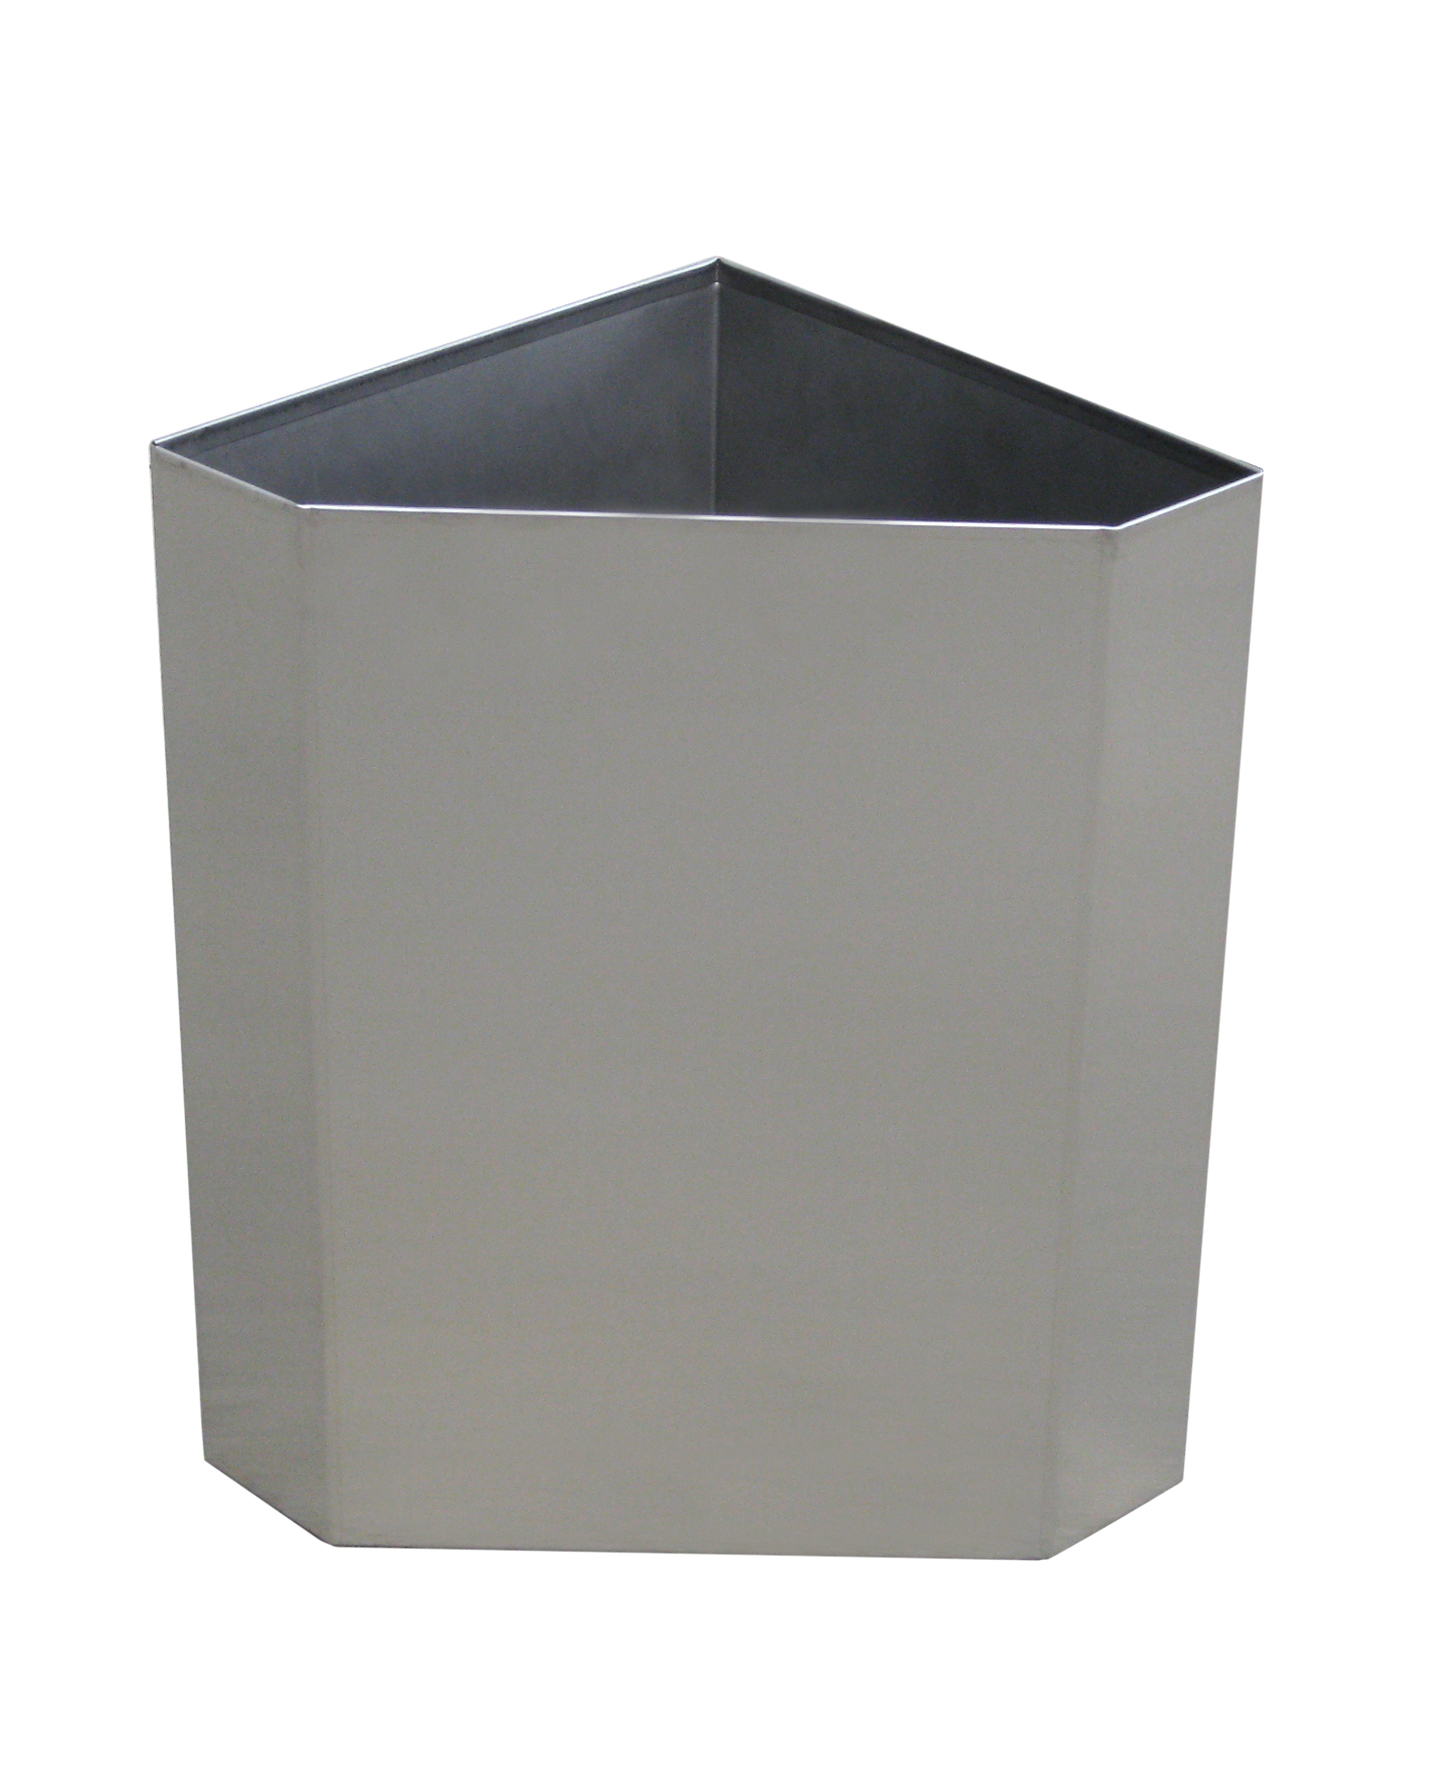 19L Corner Waste Receptacle